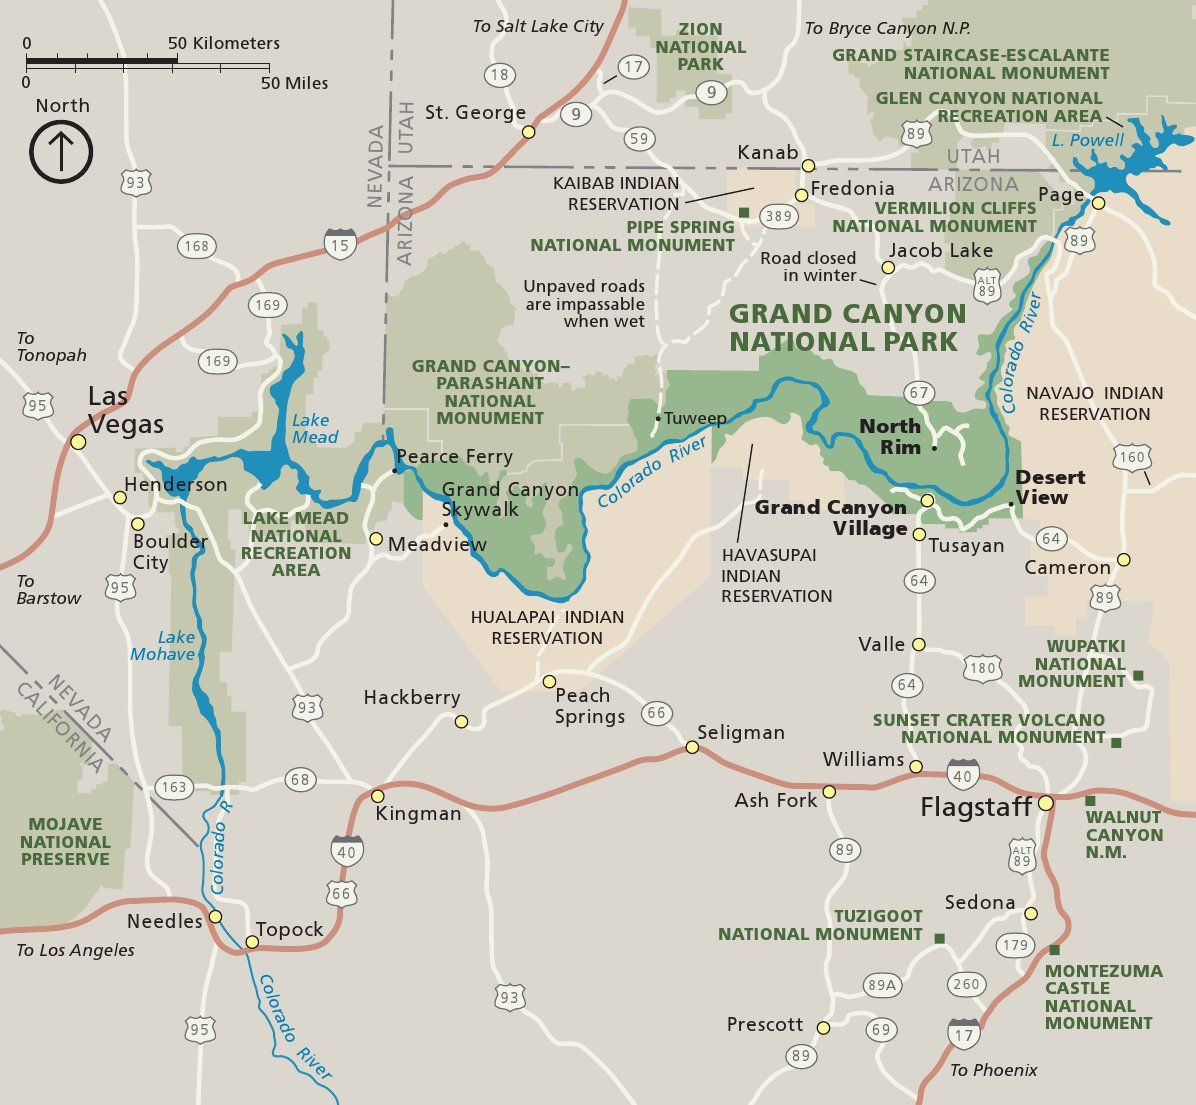 Regional map of the Grand Canyon area visit the original site to